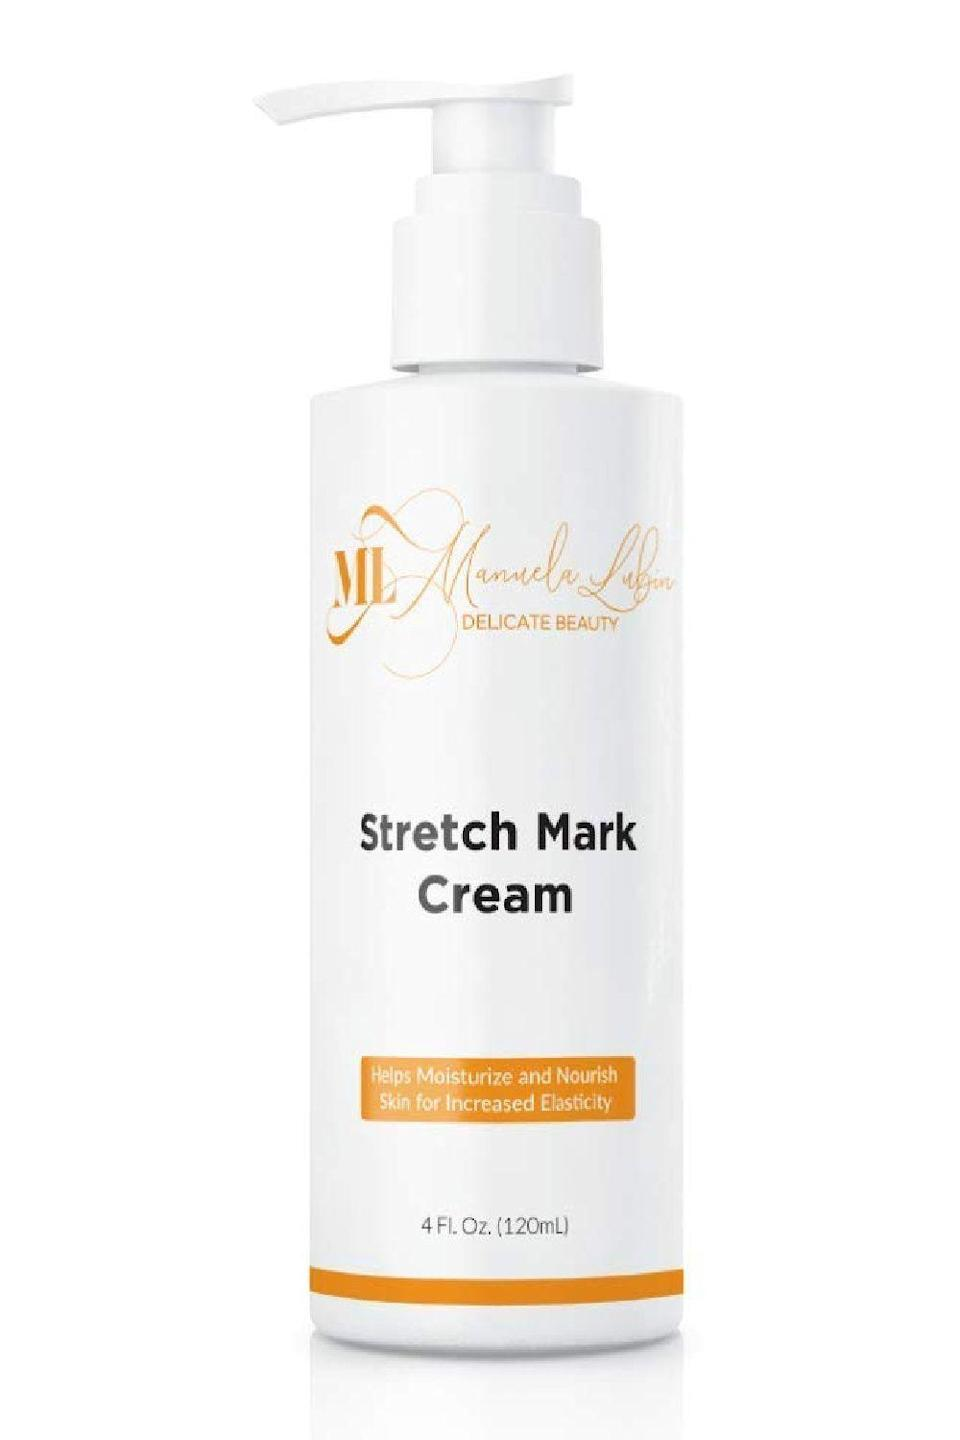 """<p><strong>ML MANUELA LUBIN DELICATE BEAUTY</strong></p><p>amazon.com</p><p><strong>$25.99</strong></p><p><a href=""""https://www.amazon.com/dp/B07NGP5RGS?tag=syn-yahoo-20&ascsubtag=%5Bartid%7C10049.g.23323942%5Bsrc%7Cyahoo-us"""" rel=""""nofollow noopener"""" target=""""_blank"""" data-ylk=""""slk:Shop Now"""" class=""""link rapid-noclick-resp"""">Shop Now</a></p><p>This cream contains two of the three ingredients Dr. Rabach recommends for minimizing the appearance of stretch marks: <a href=""""https://www.cosmopolitan.com/style-beauty/beauty/g28948492/best-hyaluronic-acid-serum/"""" rel=""""nofollow noopener"""" target=""""_blank"""" data-ylk=""""slk:hyaluronic acid"""" class=""""link rapid-noclick-resp"""">hyaluronic acid</a> and silicones. Together, these ingredients, along with other humectants and moisturizers (like panthenol, glycerin, and squalane) <strong>help to smooth, plump, and improve the feel of stretch marks</strong>.</p>"""